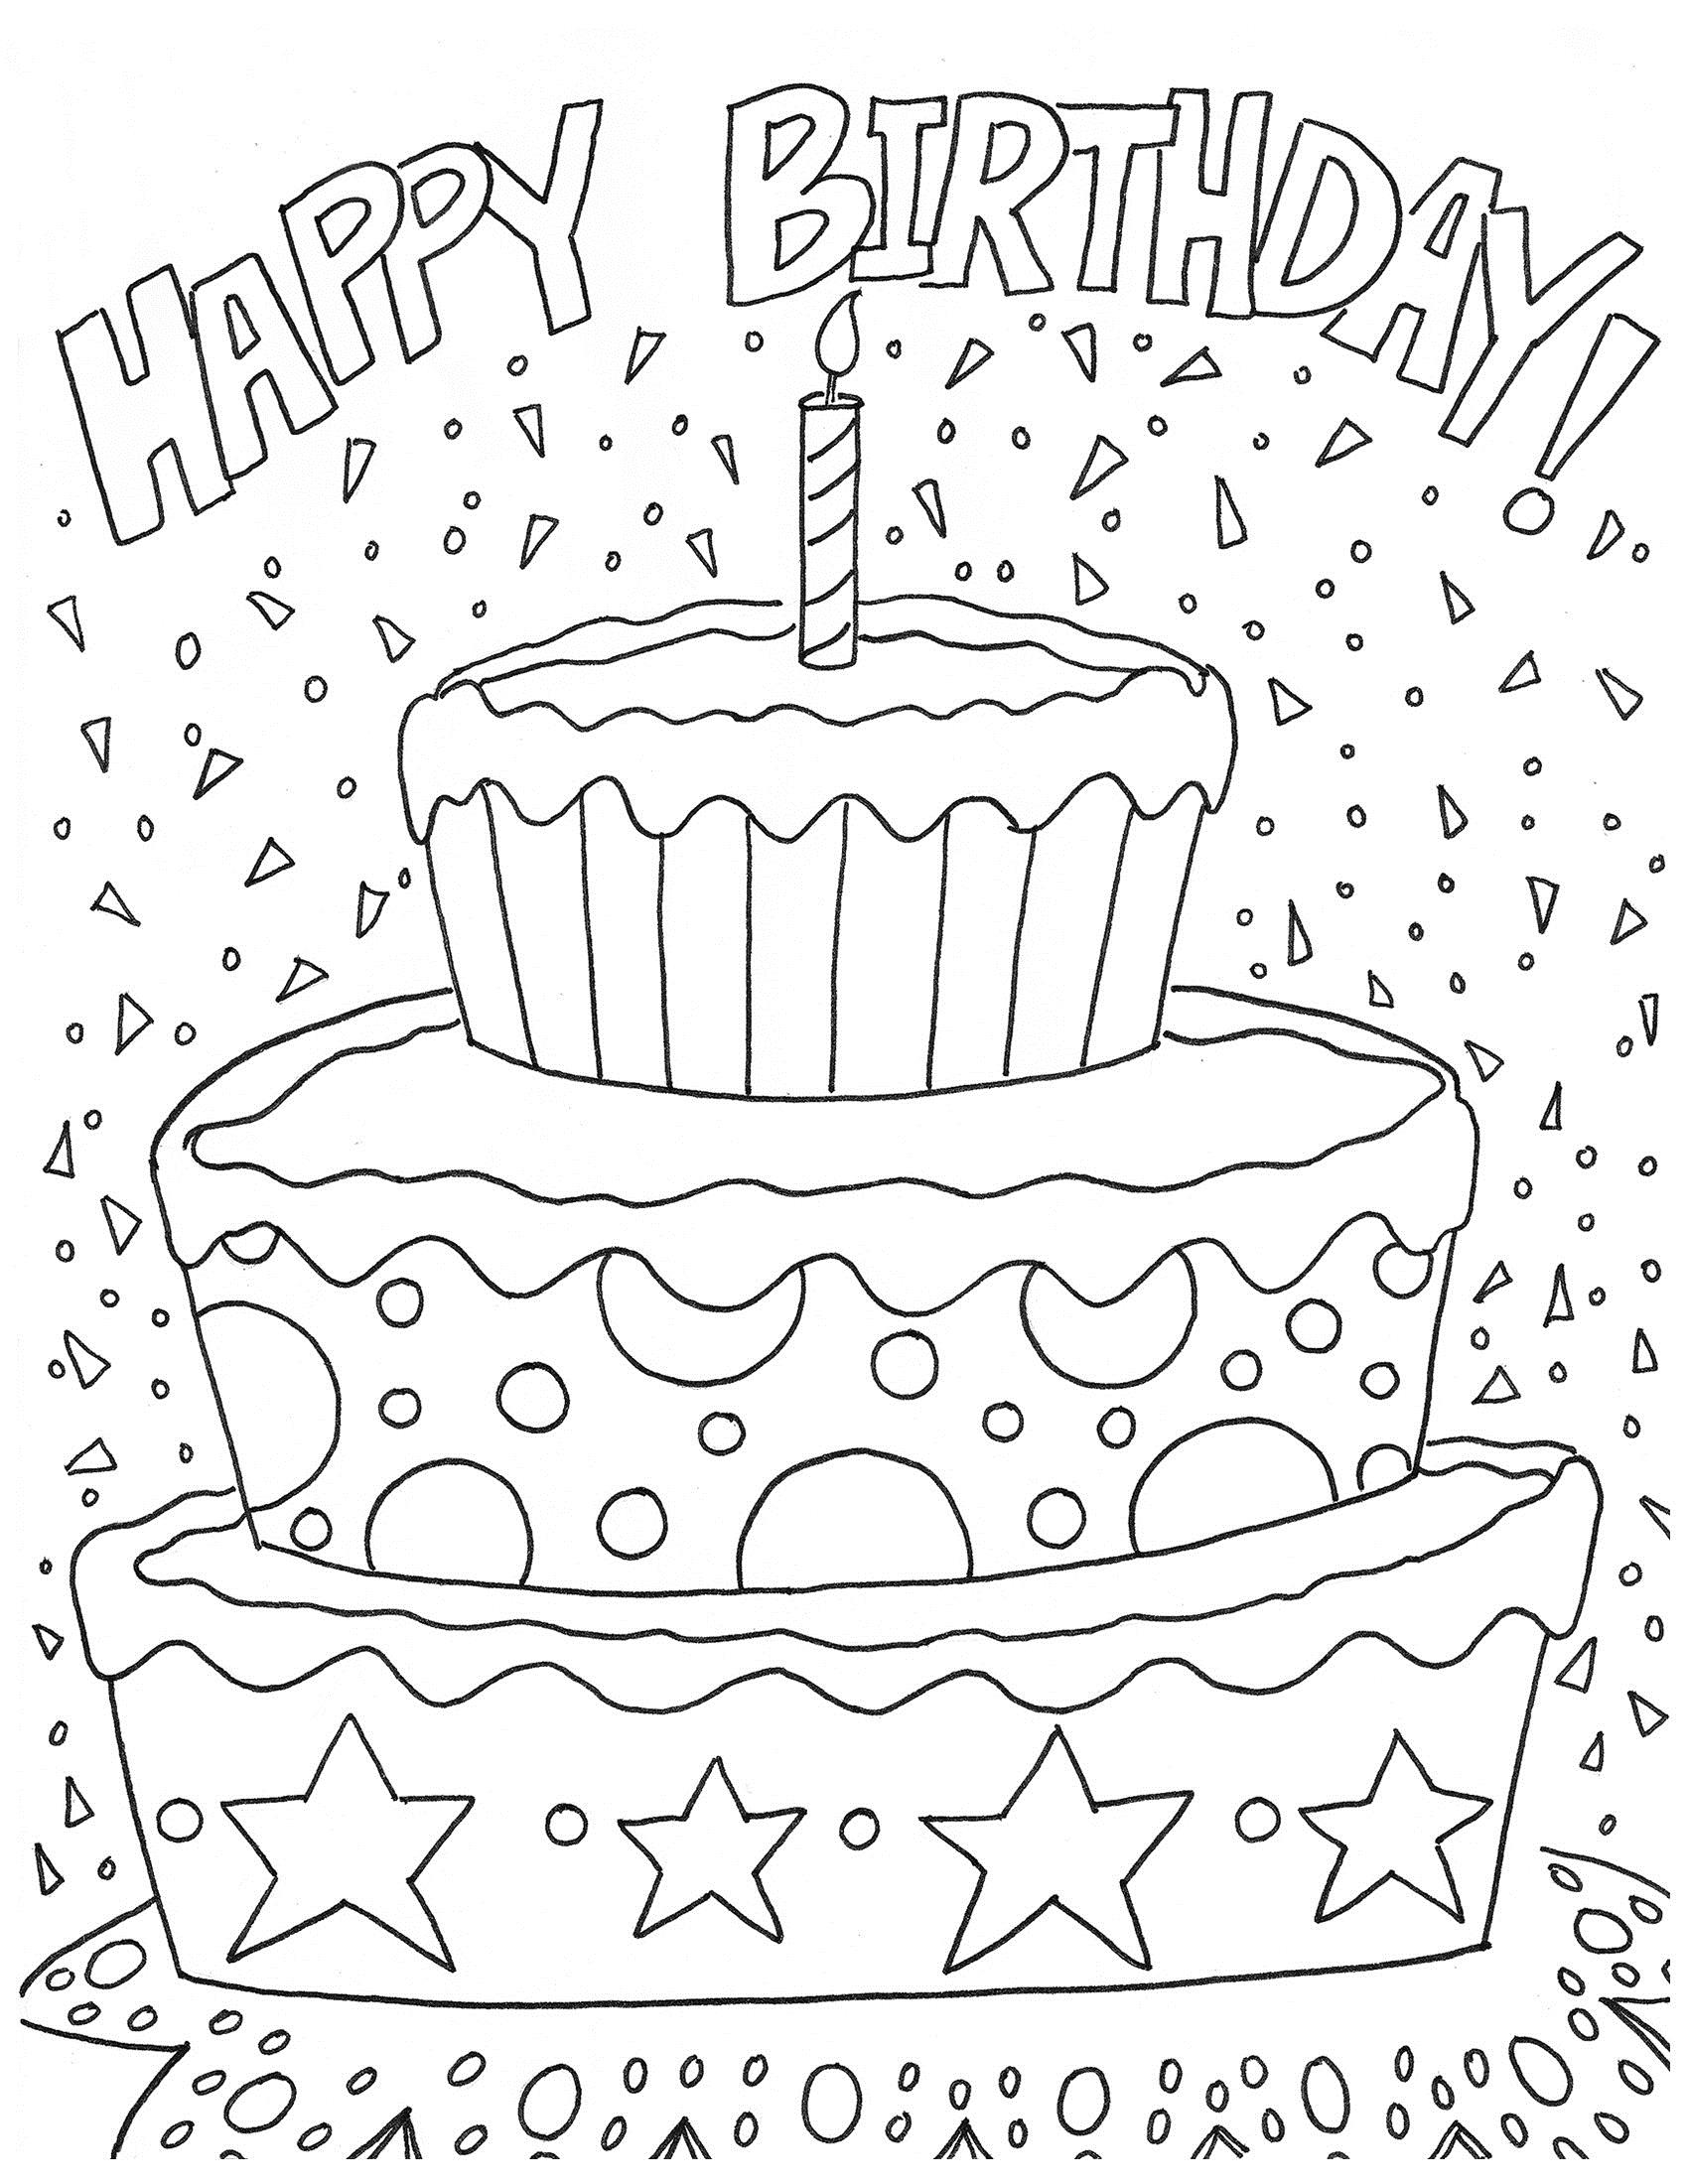 birthday coloring pages ; printable-free-happy-birthday-coloring-pages-inok-with